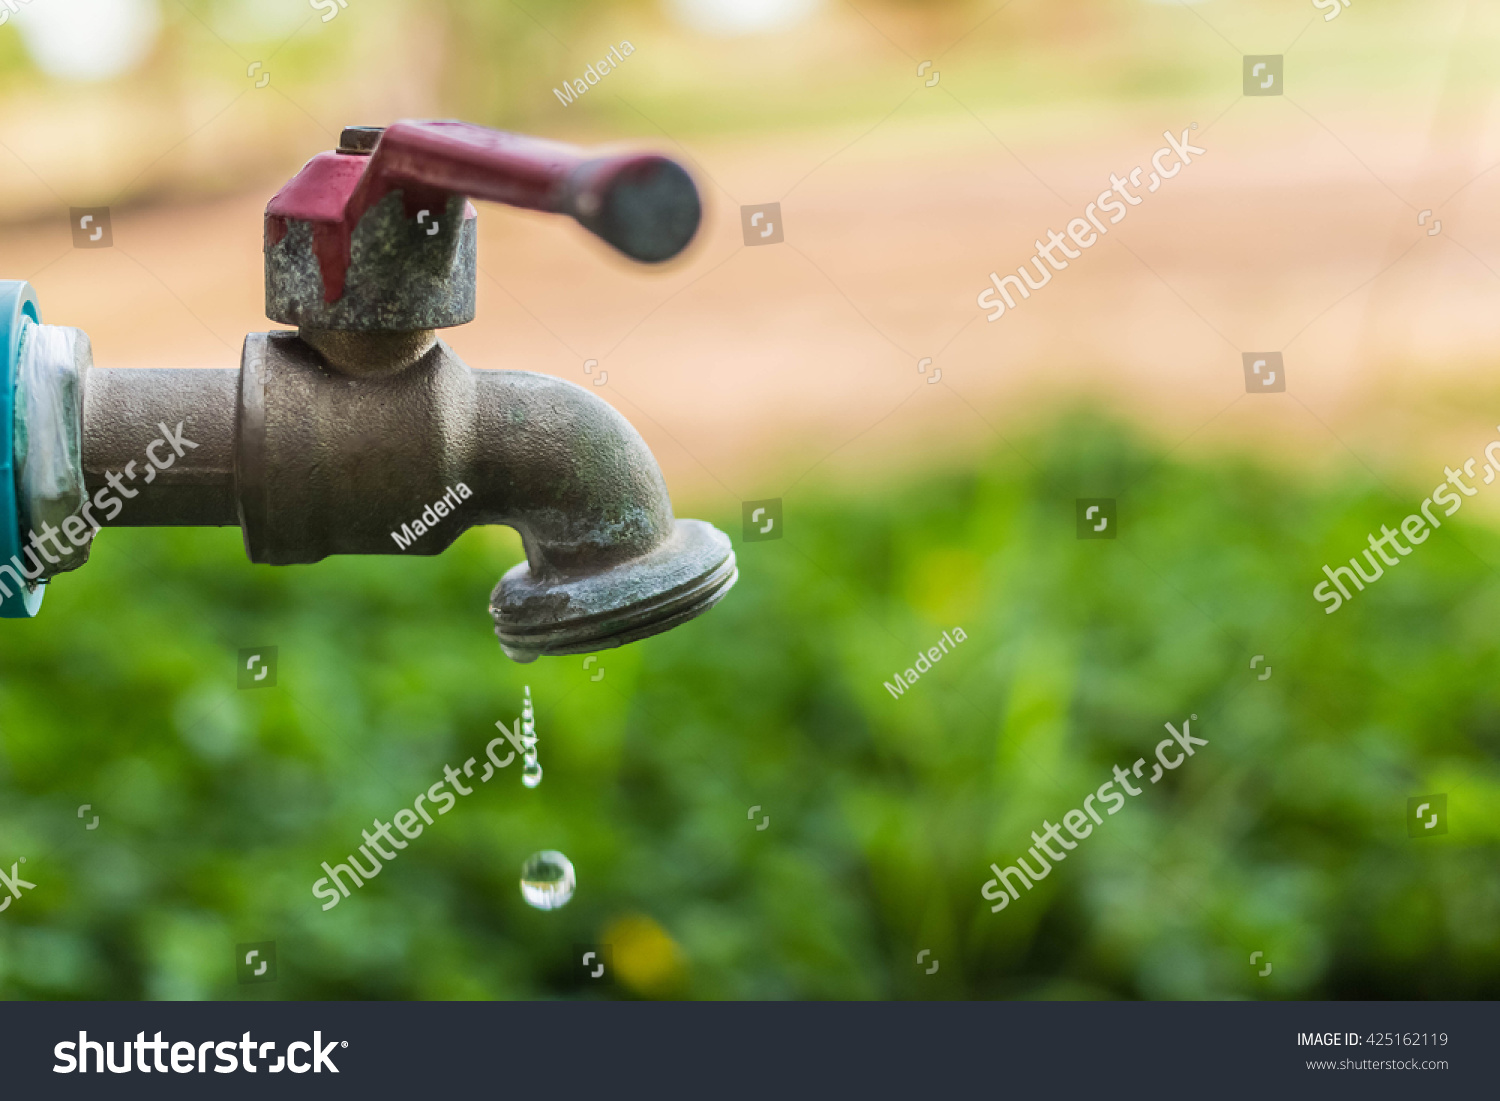 Defective Faucet Cause Wastage Water Old Stock Photo (Download Now ...